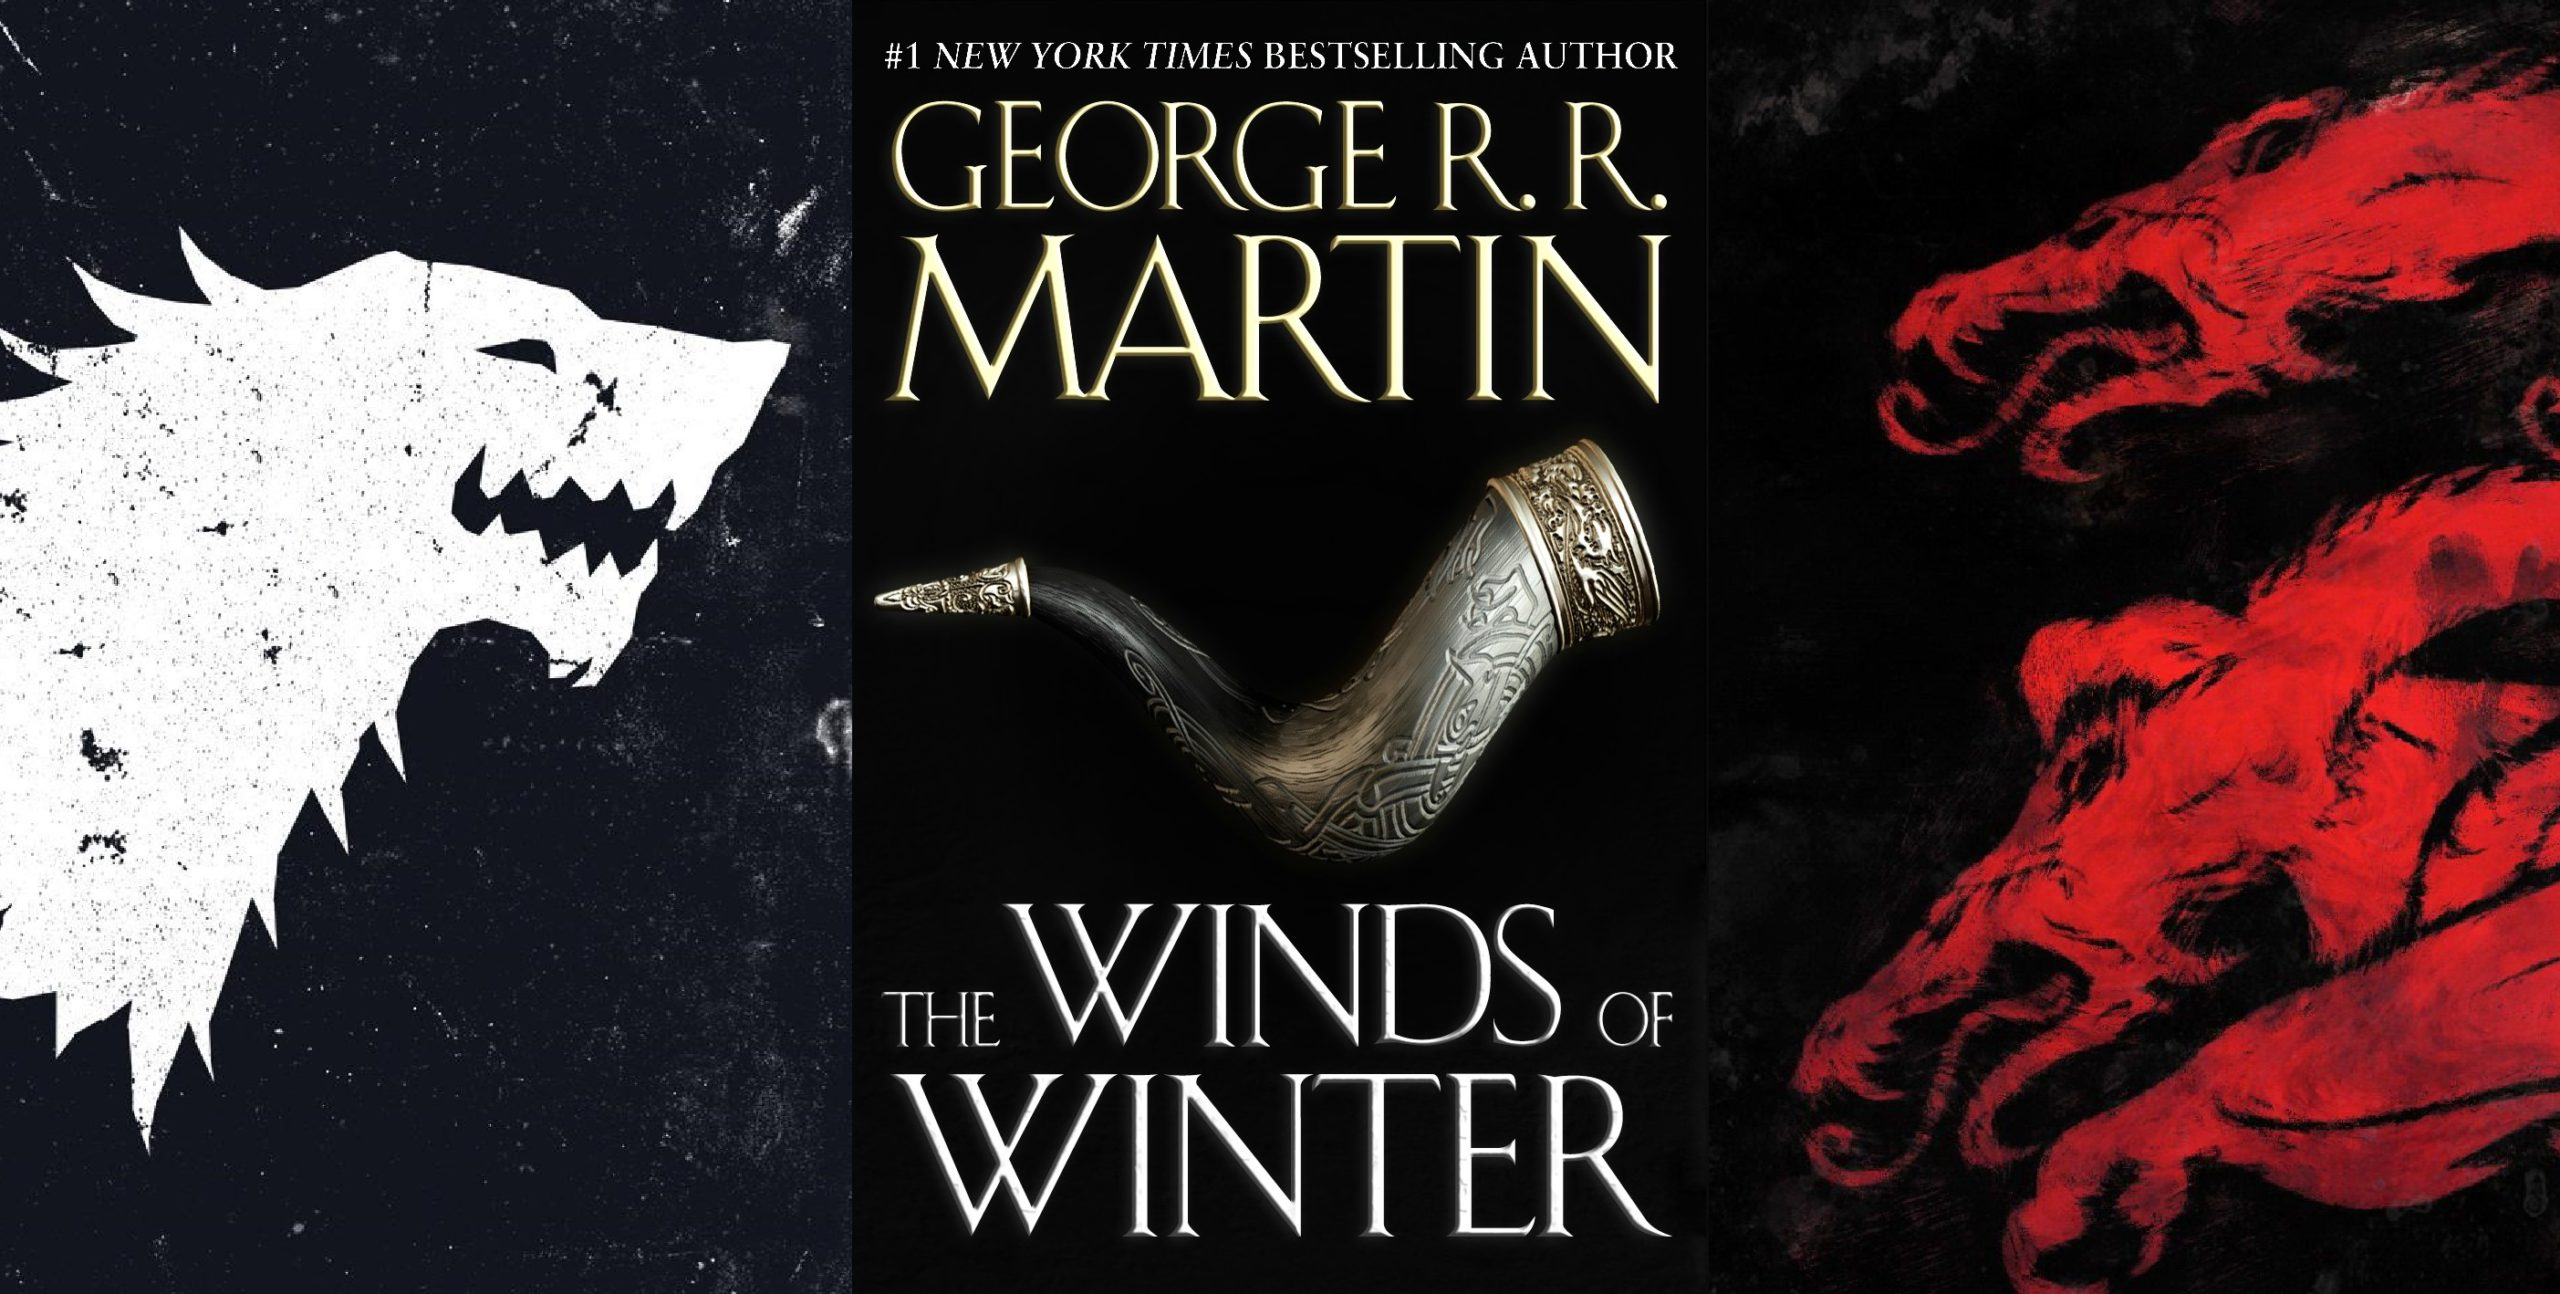 The Winds of Winter 2020 Release Date Promise by GRRM